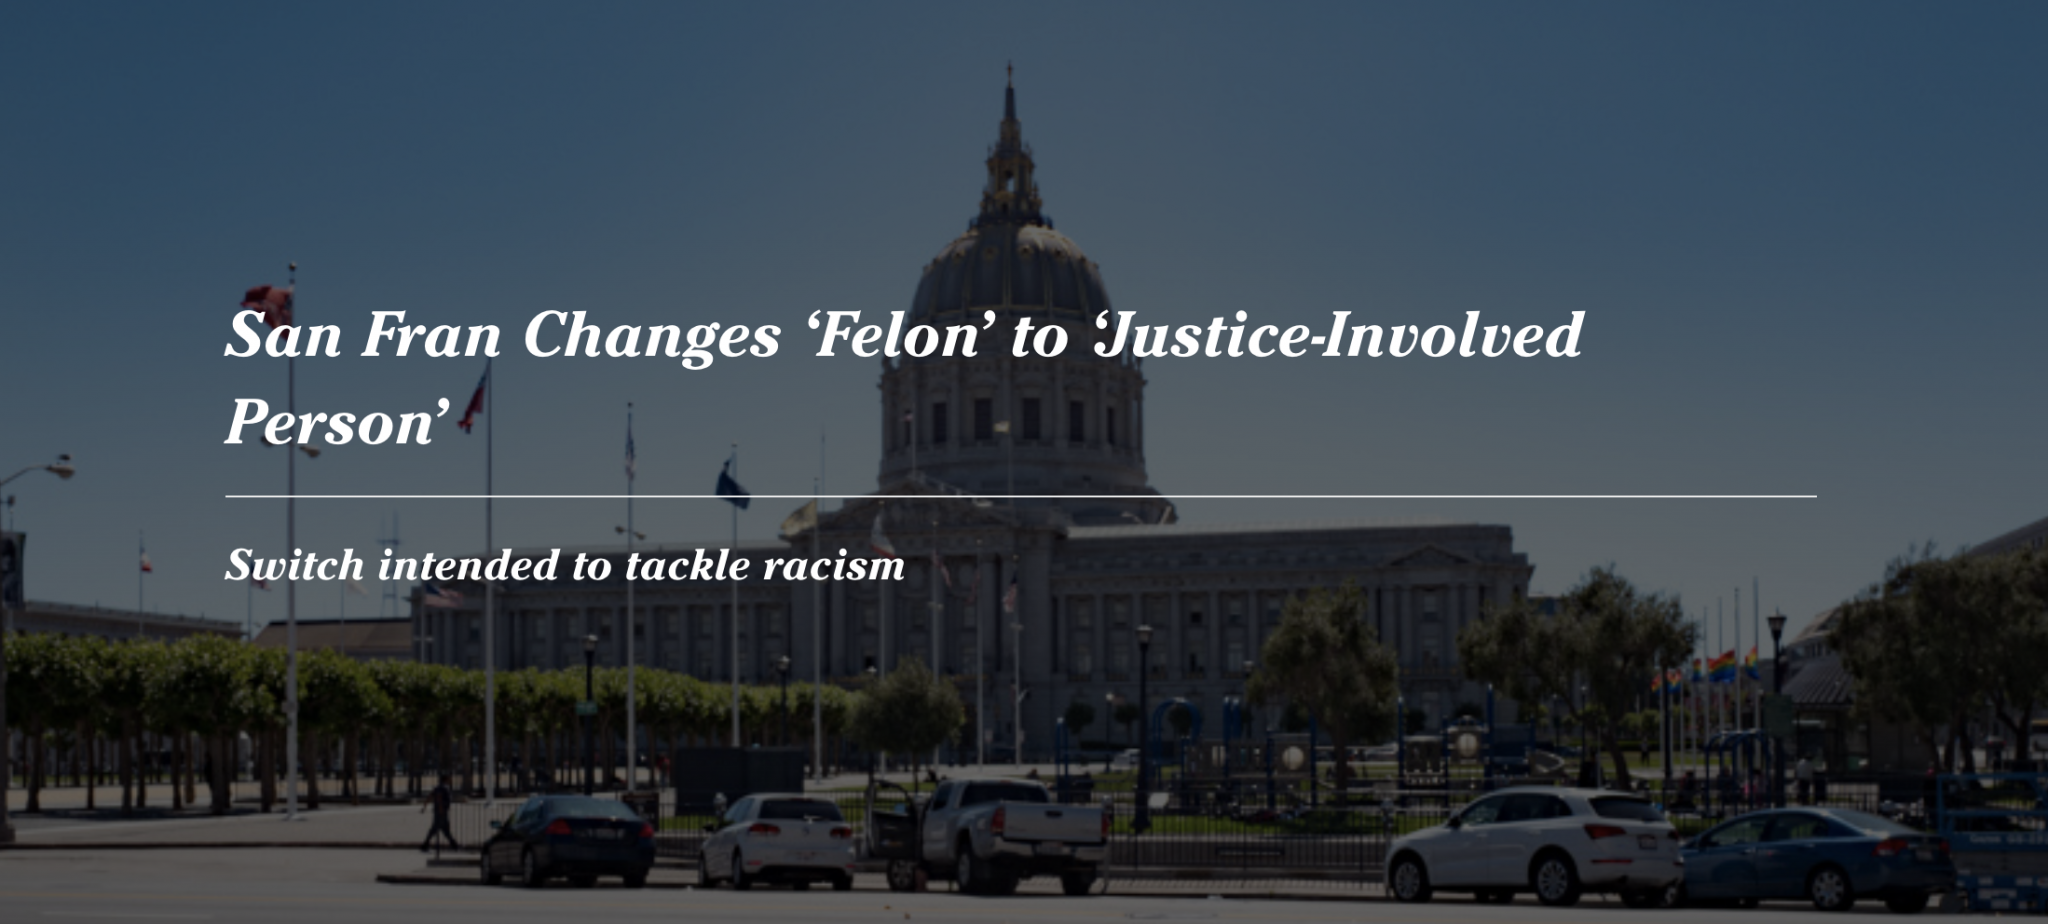 San Fran Changes 'Felon' to 'Justice-Involved Person'